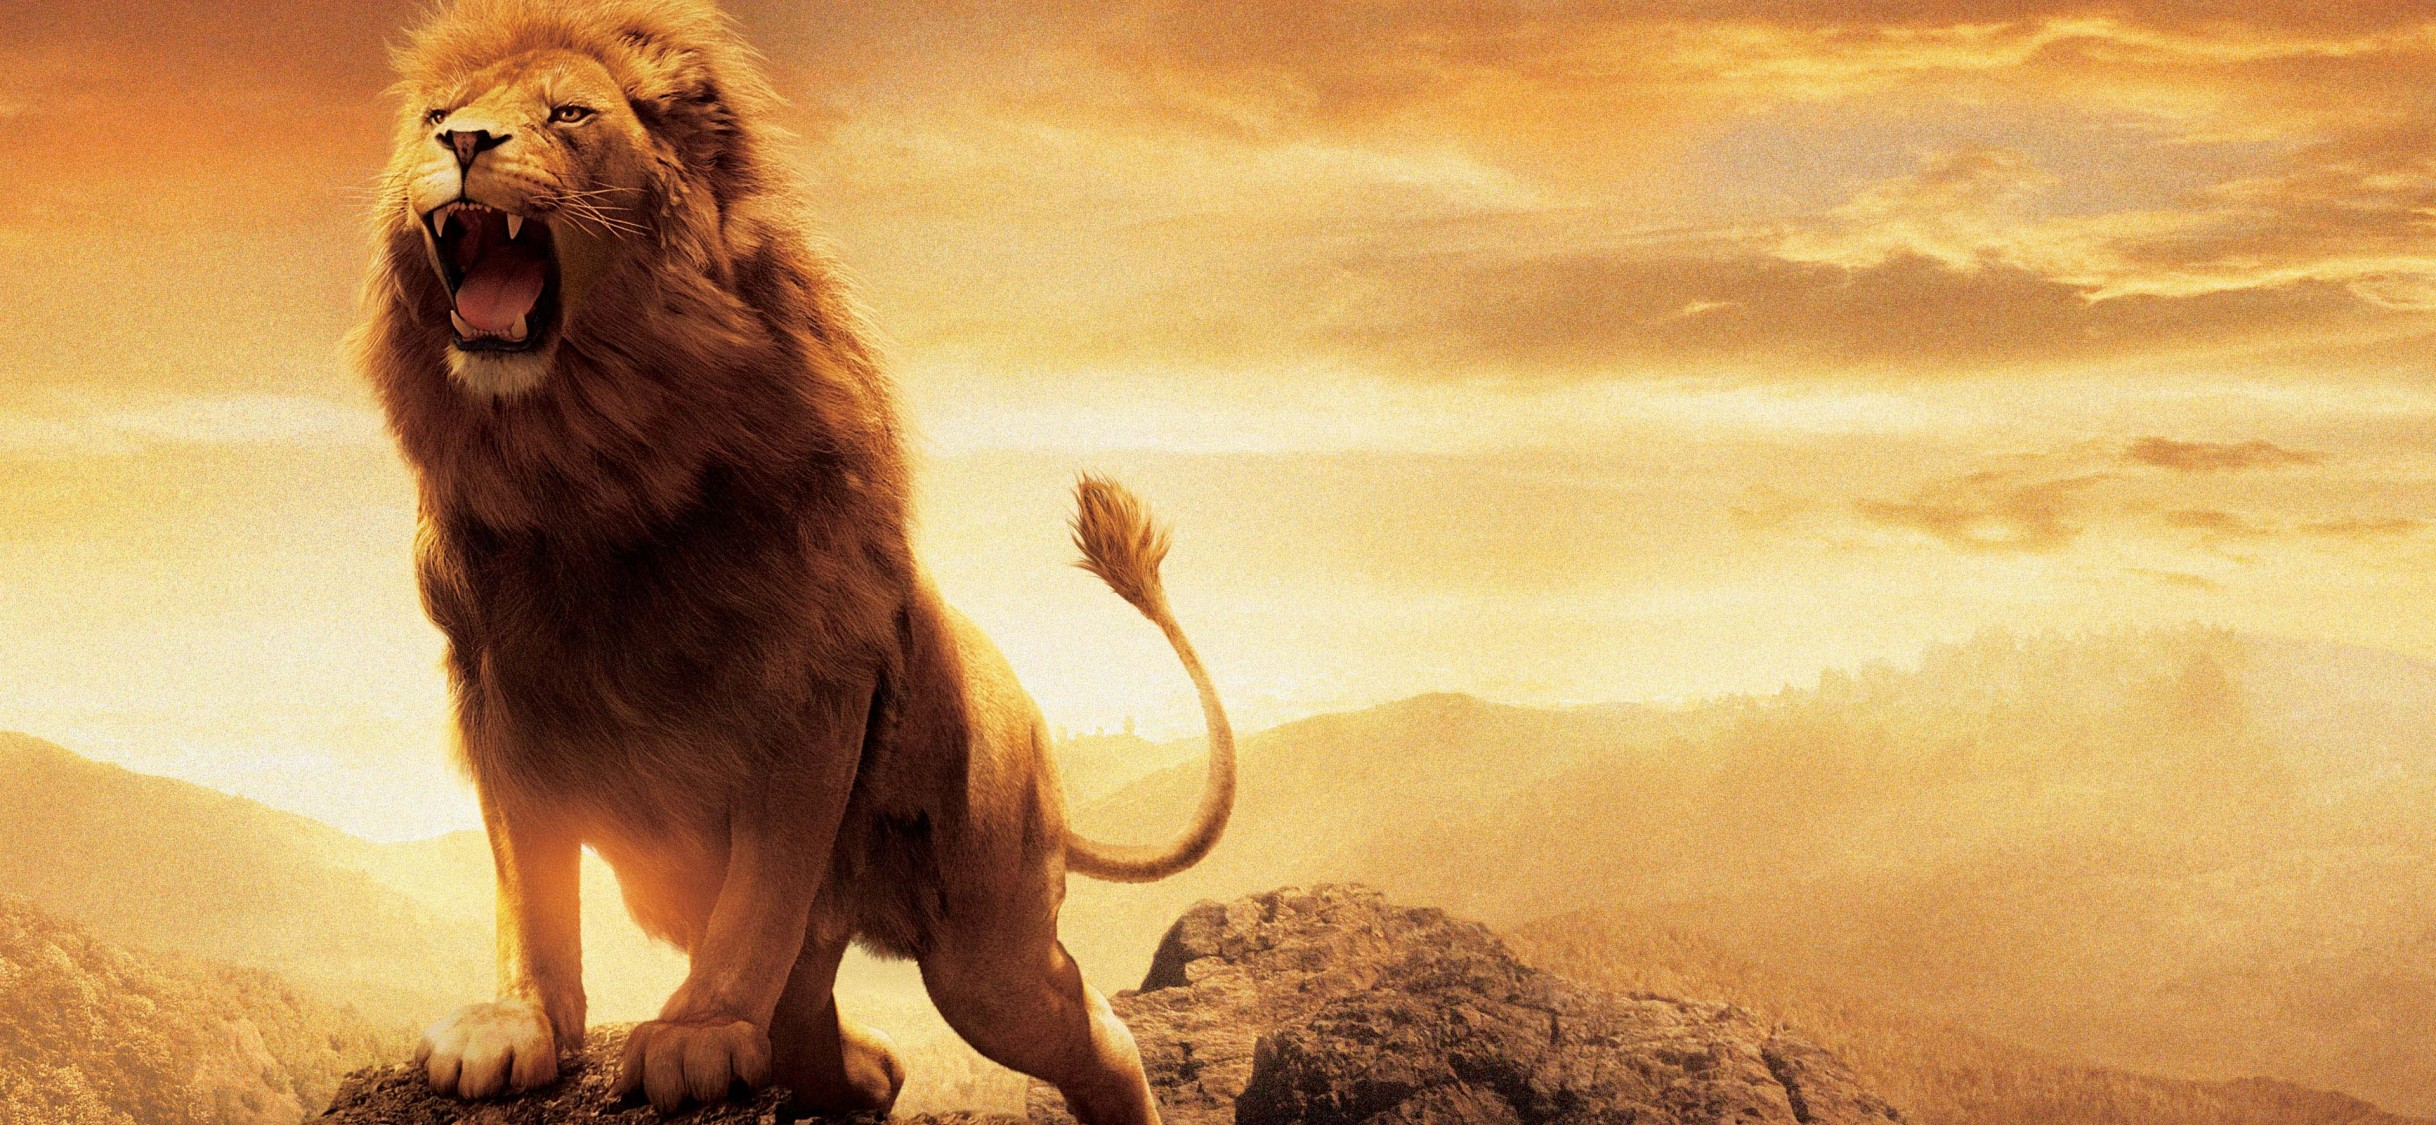 Aslan Narnia Lion Hd Wallpaper For Desktop And Mobiles Iphone X Hd